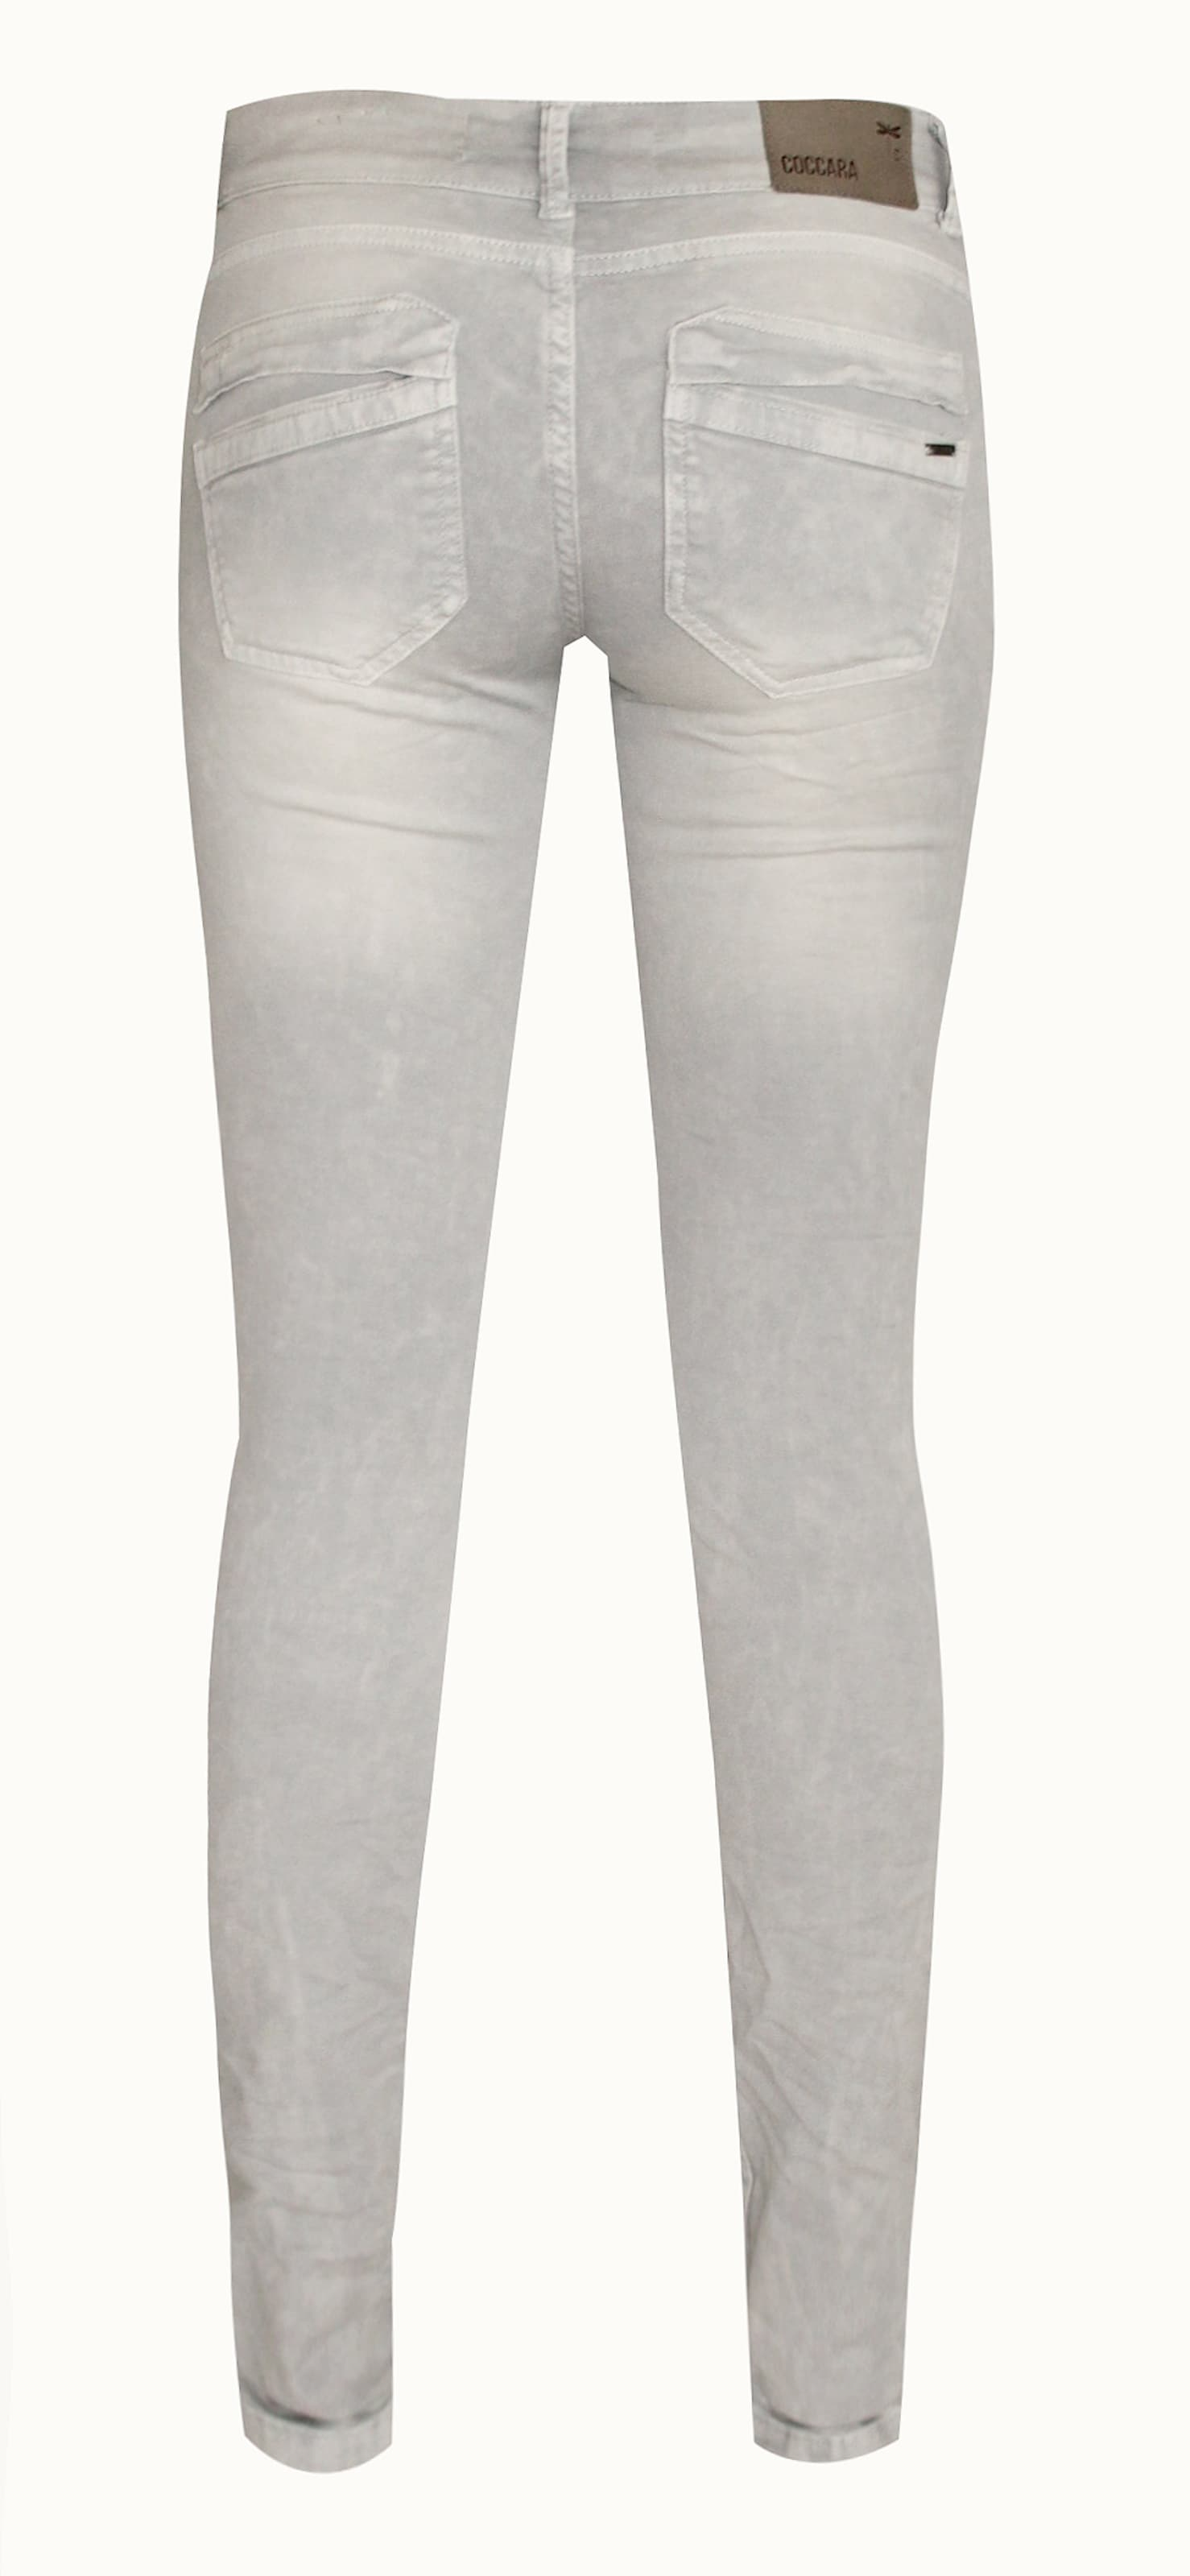 COCCARA Jeans Jeans Jeans 'Curly' in grau denim  Mode neue Kleidung fbbb05